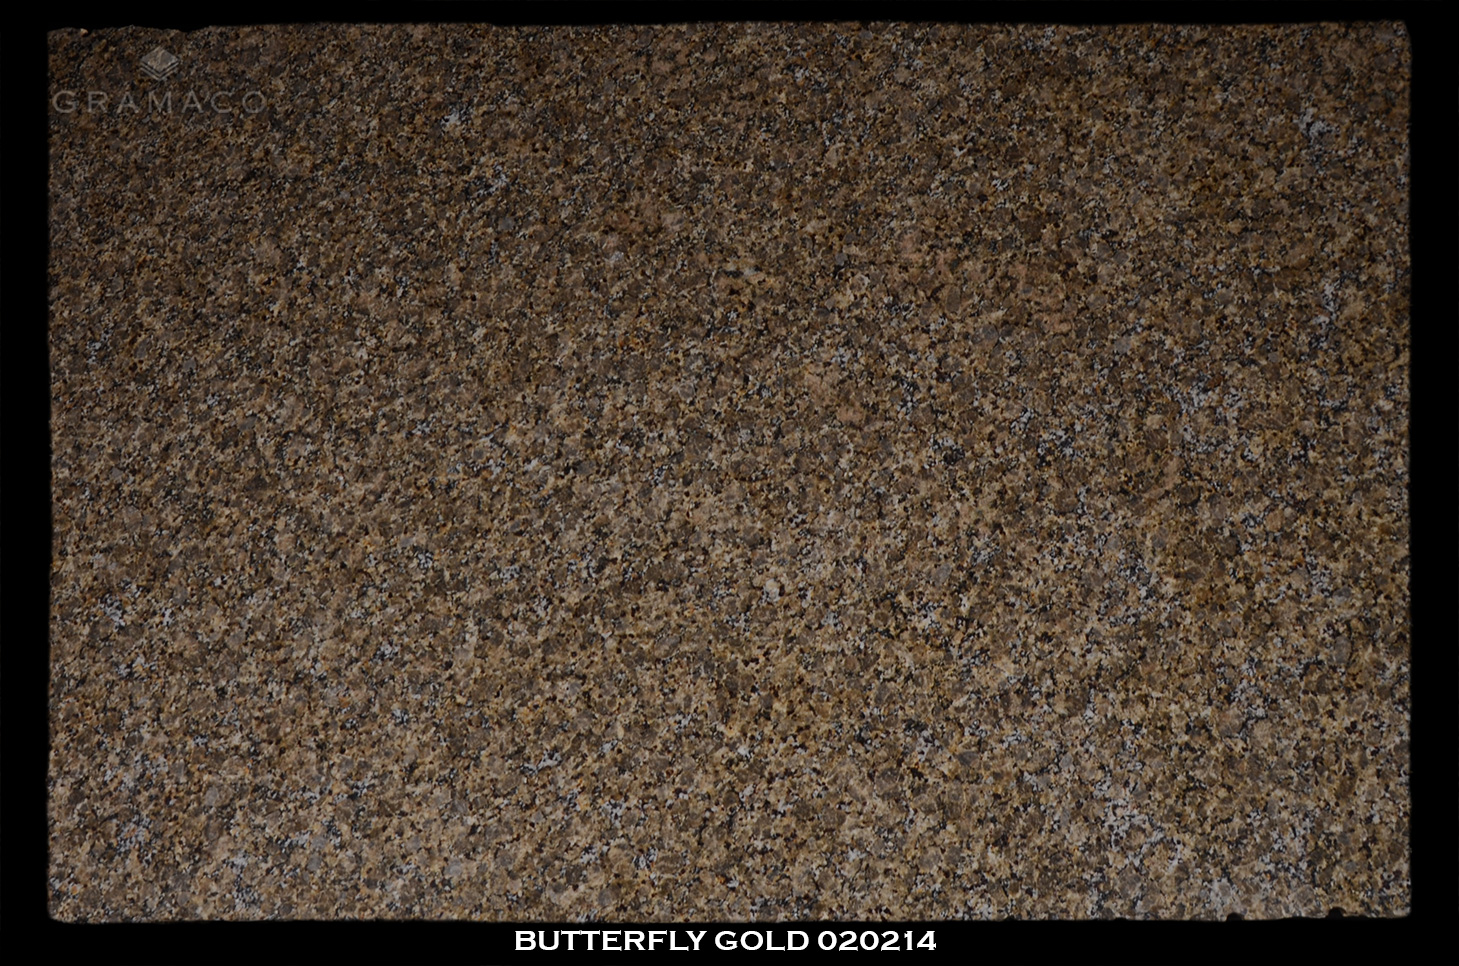 butterfly-gold-020214-slab